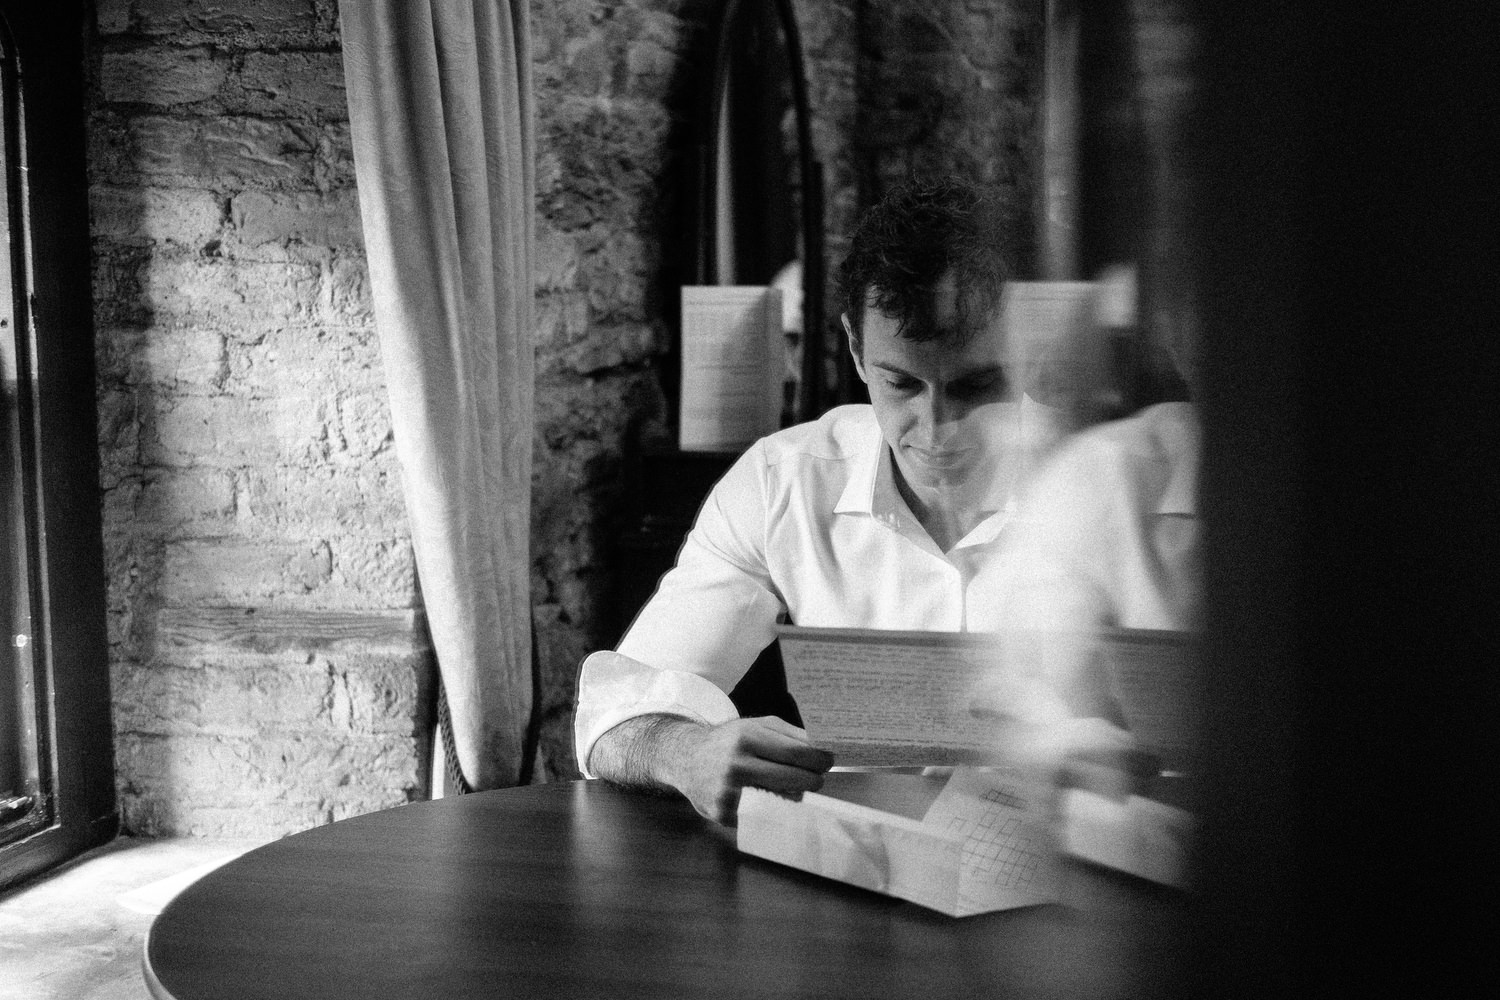 000000000000000000000020_preparation_letter_photography_david_mcclelland_ireland_crossword_shaving_castle_kinnity_wedding_groom_photographer_fujifilm